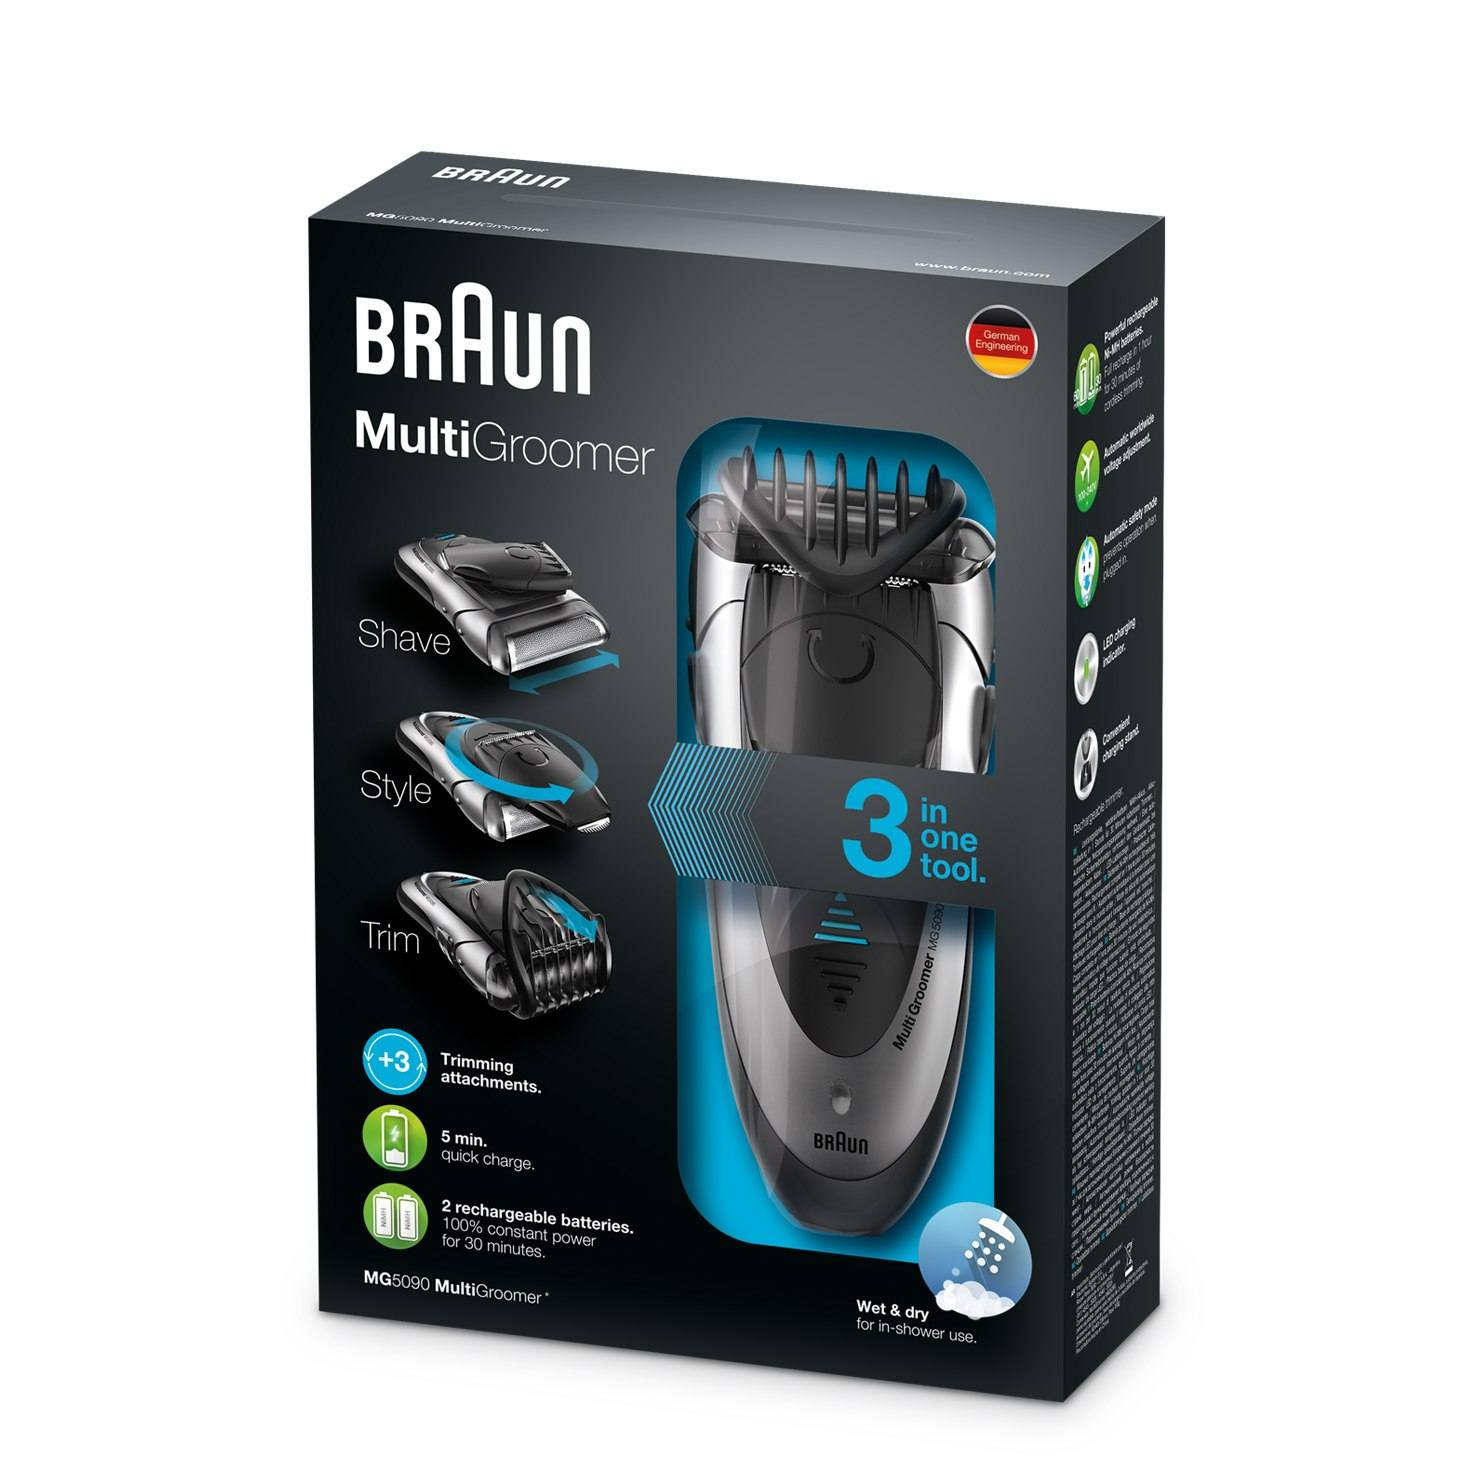 Braun multi groomer MG5090